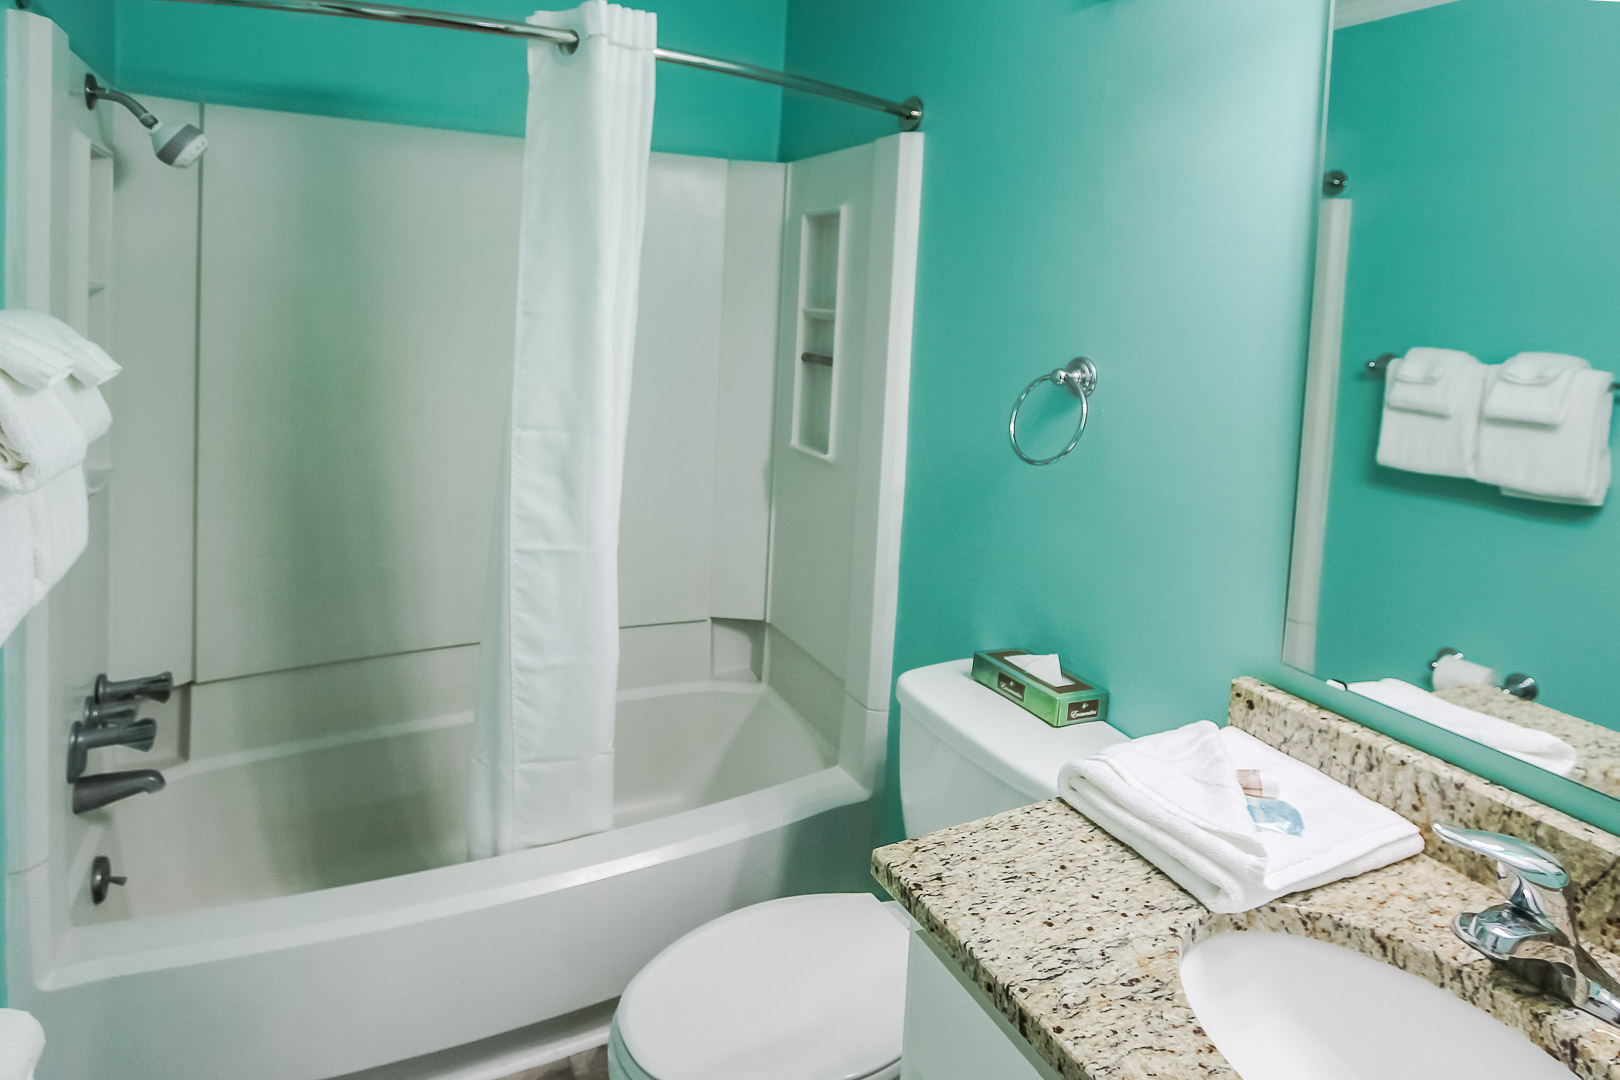 A standard bathroom at VRI's A Place at the Beach III in North Carolina